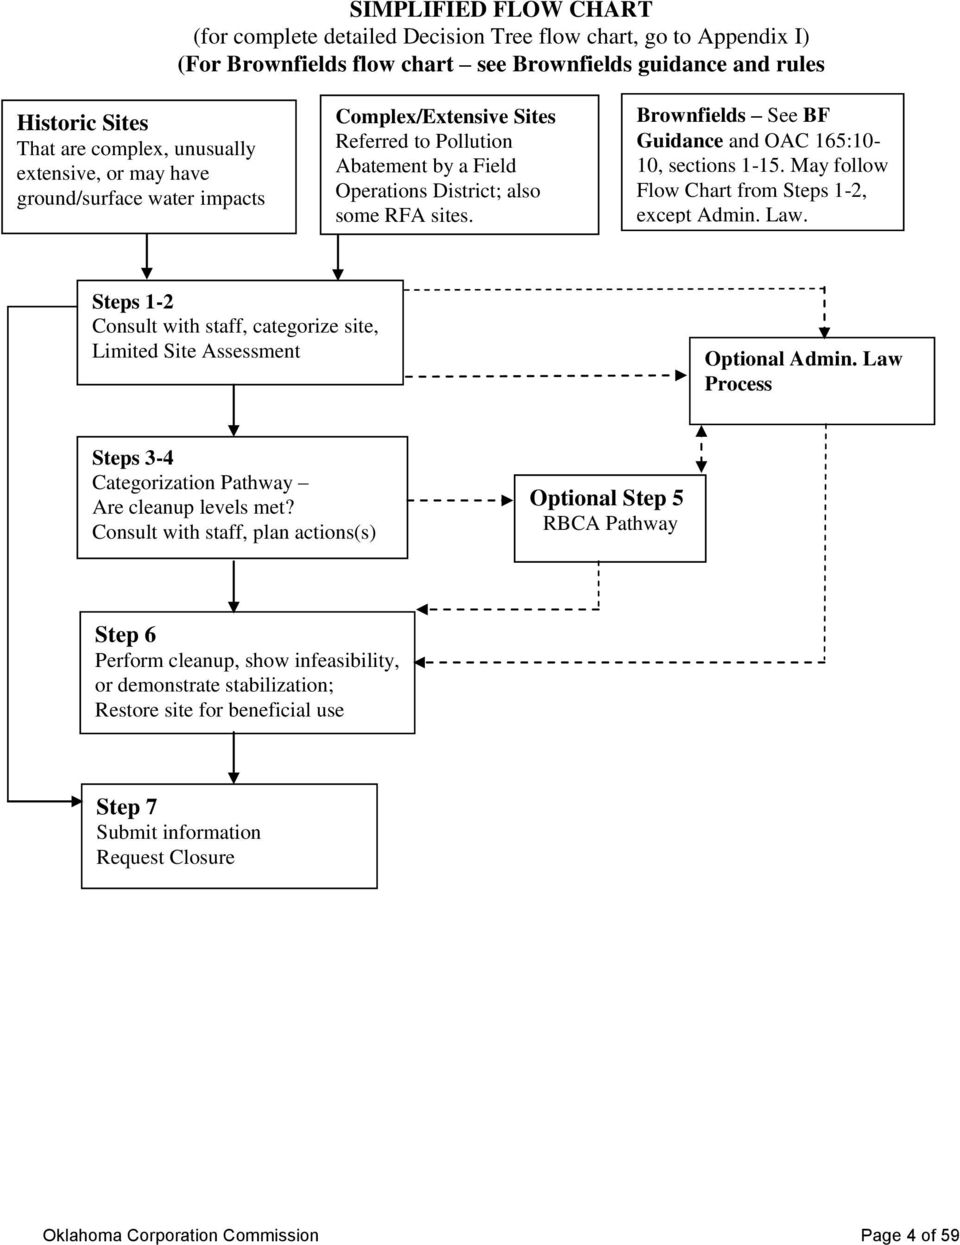 Brownfields See BF Guidance and OAC 165:10-10, sections 1-15. May follow Flow Chart from Steps 1-2, except Admin. Law.